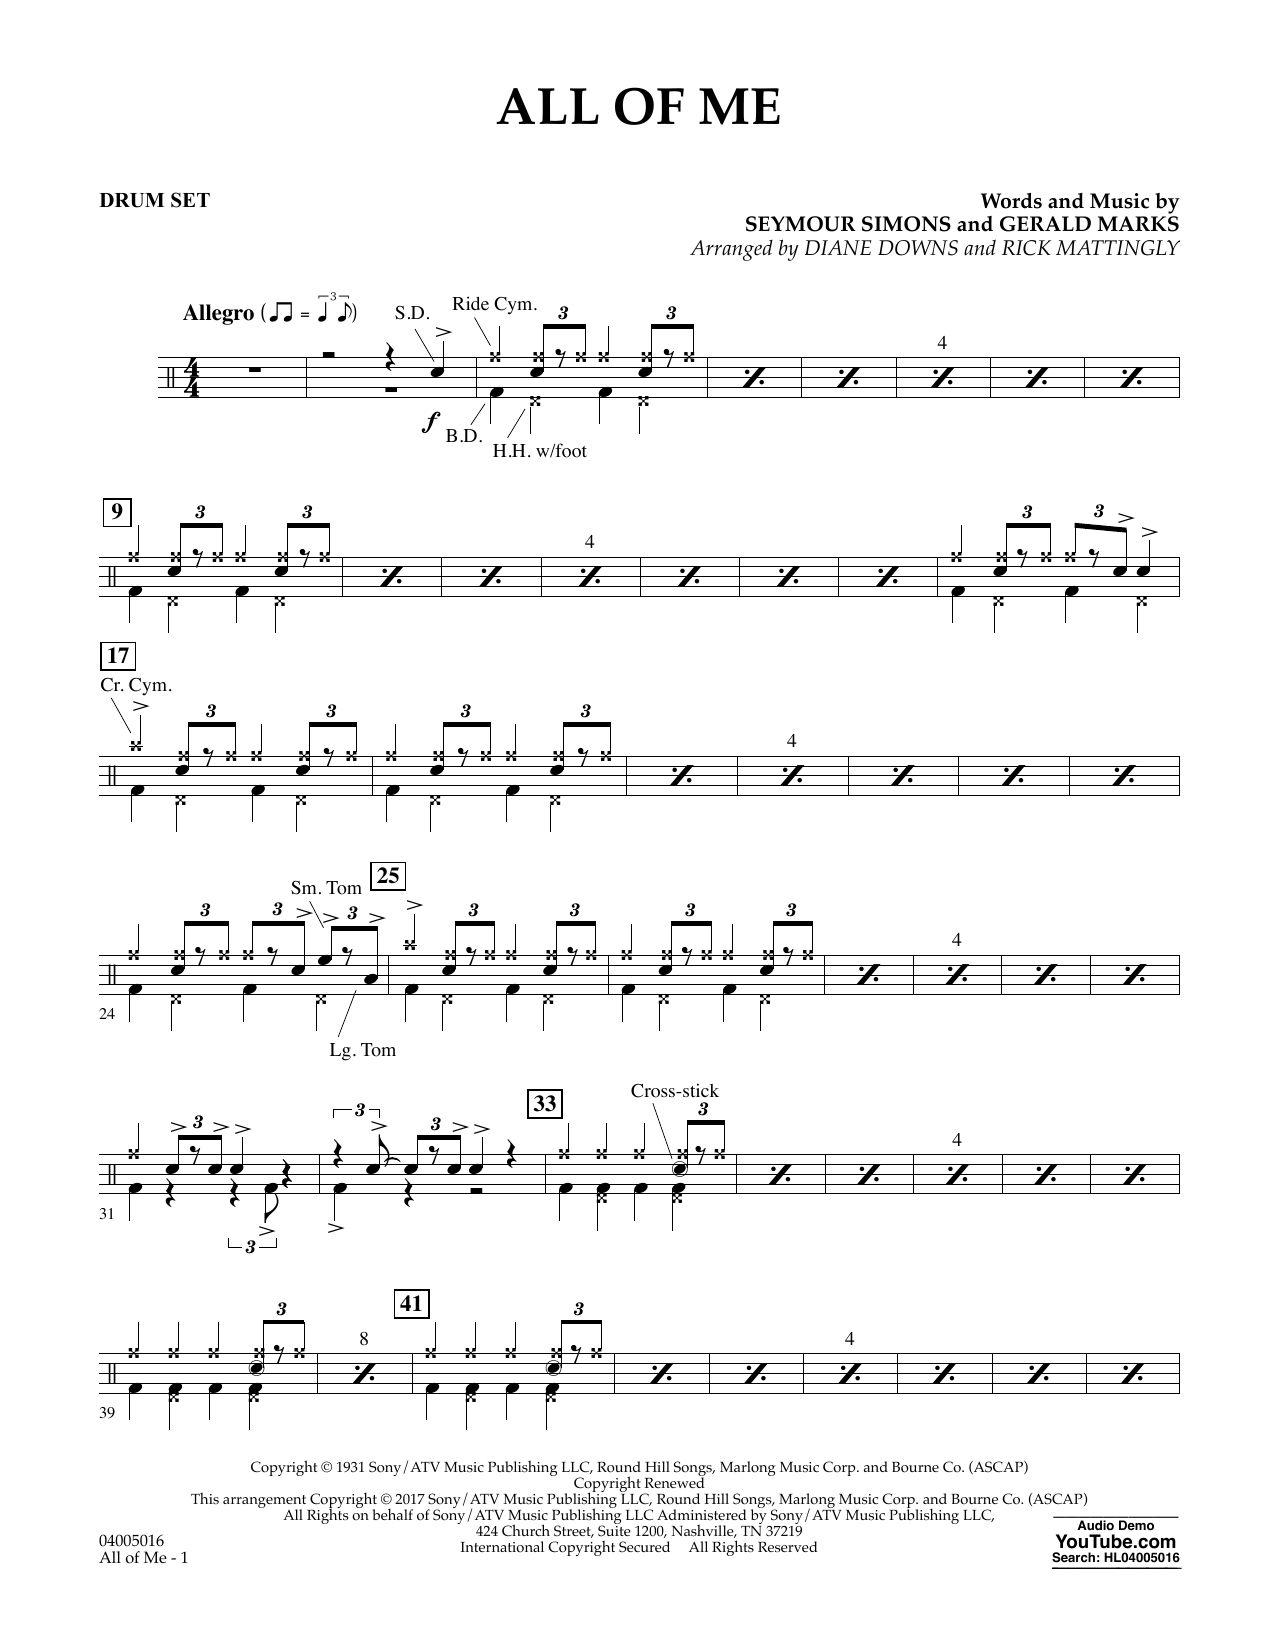 All of Me - Drum Set Sheet Music